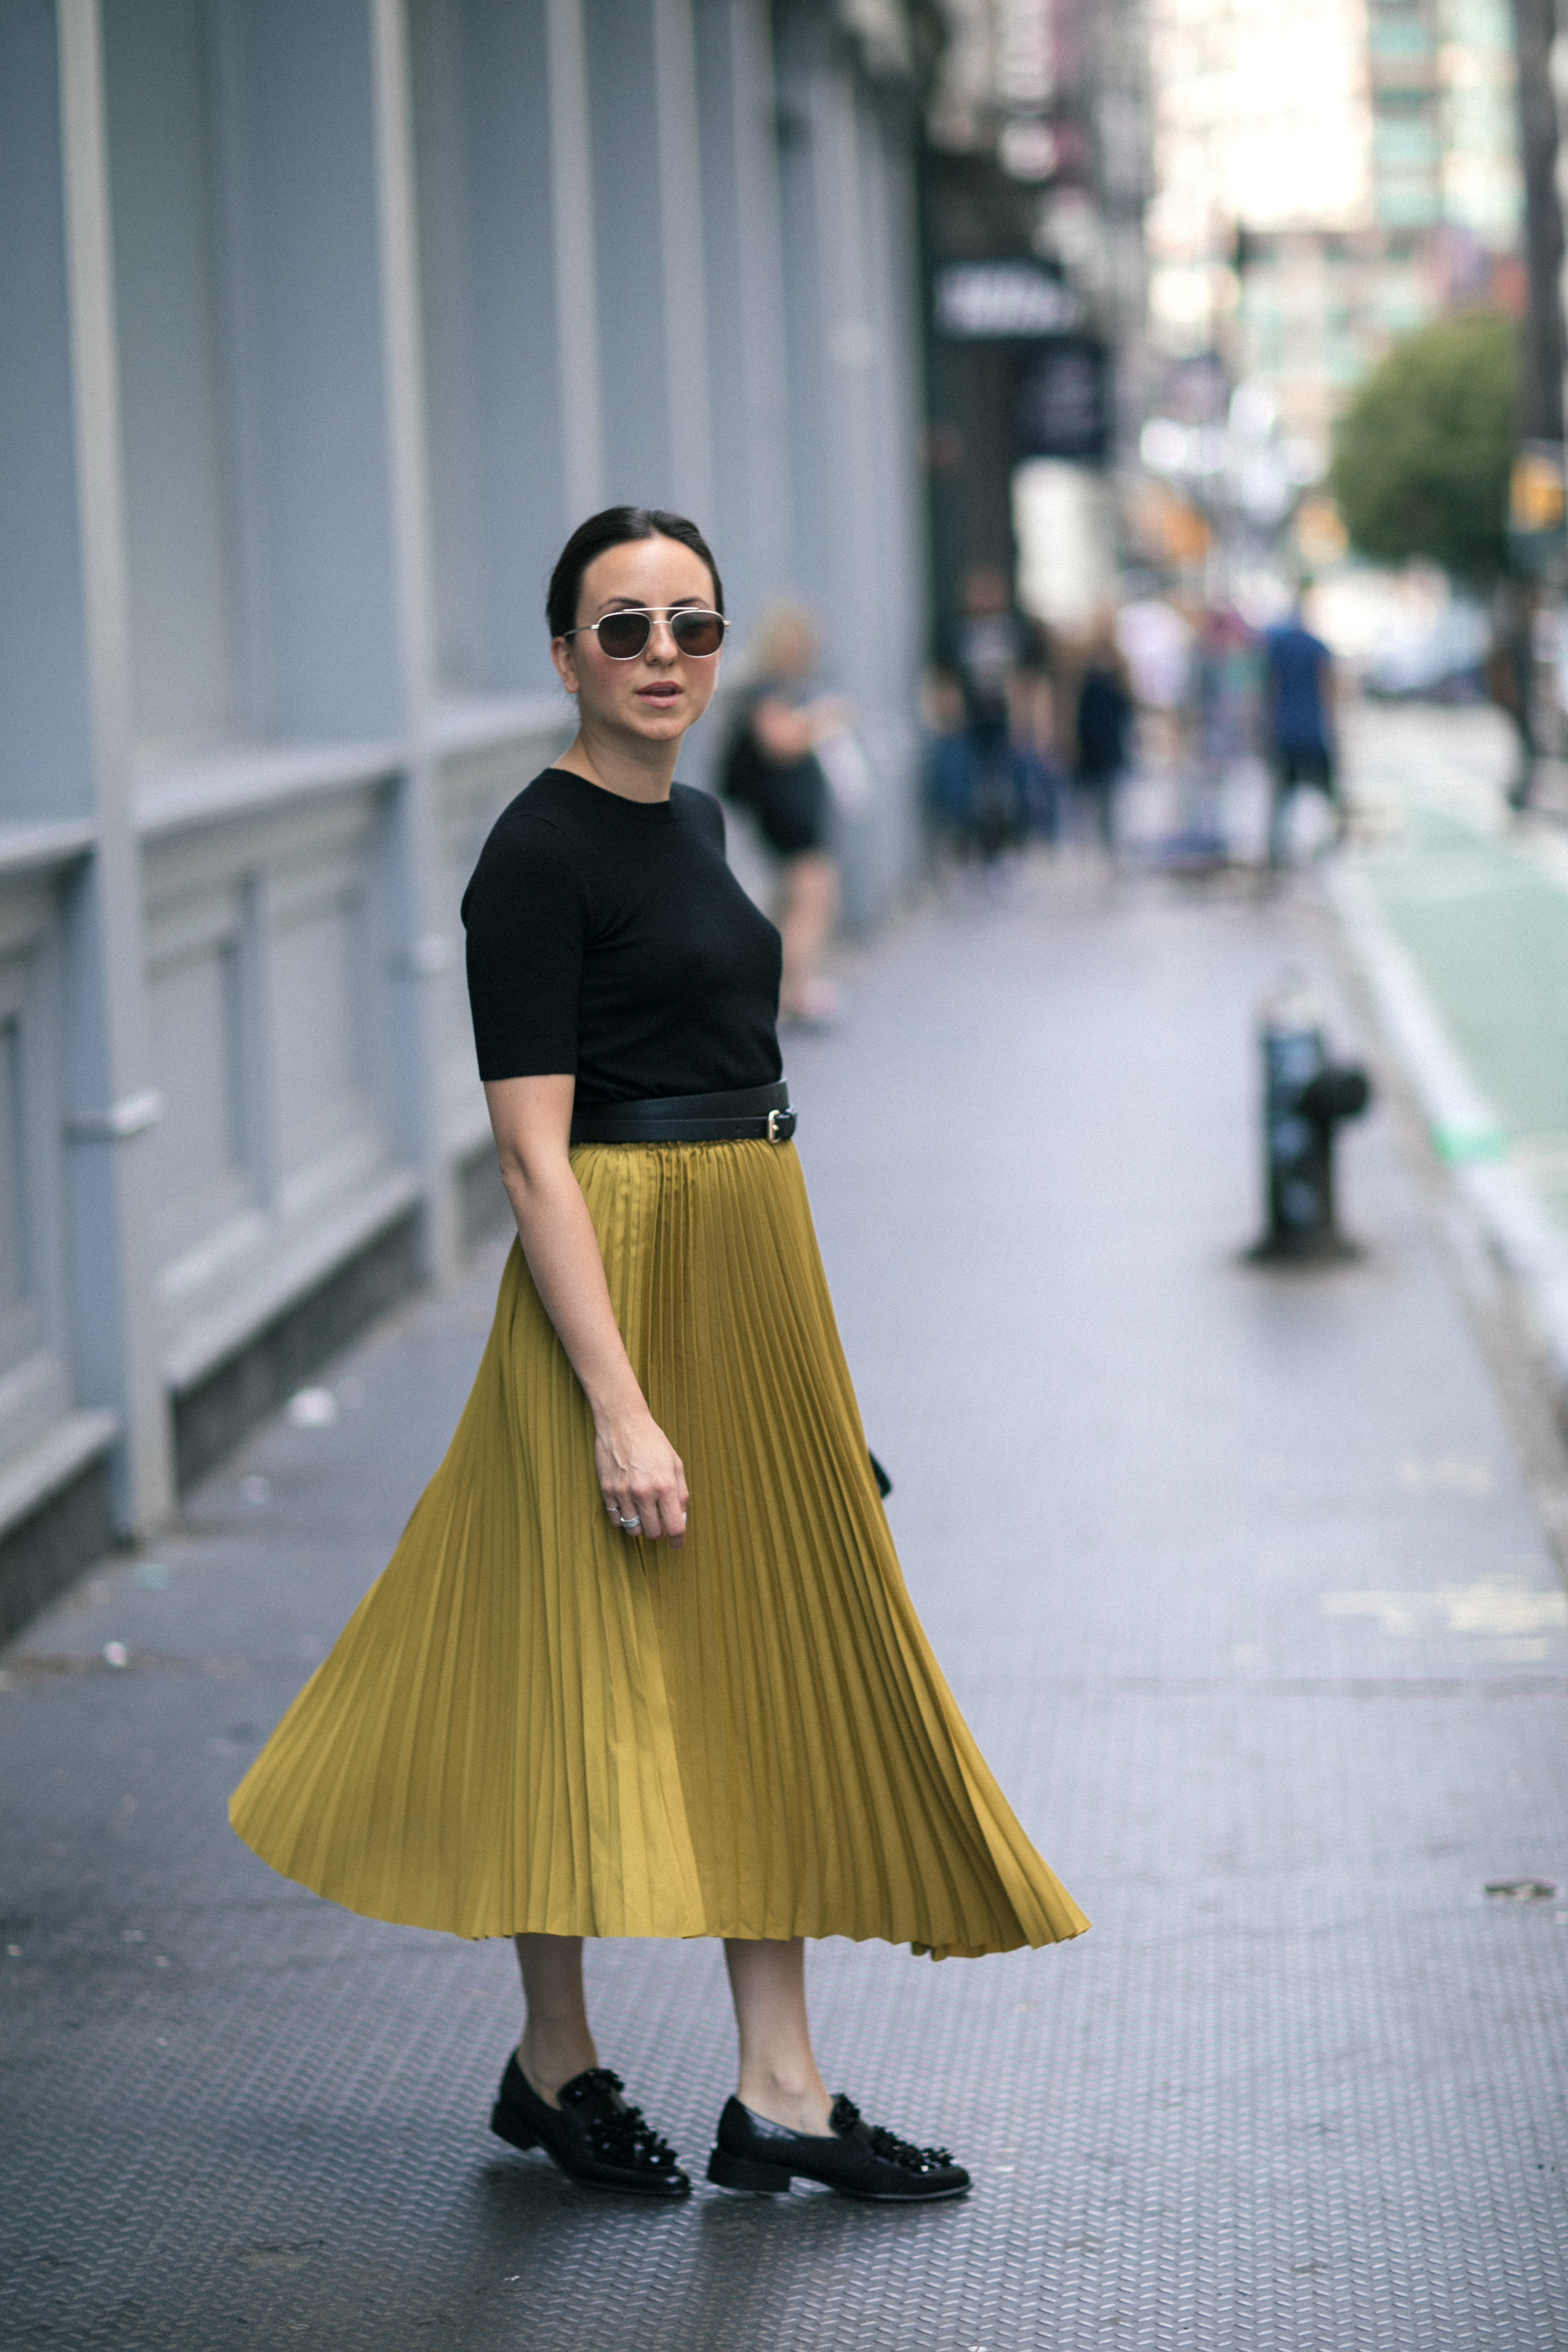 Yana Frigelis of NoMad Luxuries wearing a midi skirt from Zara for a fall trend and loafers for a casual look in new york